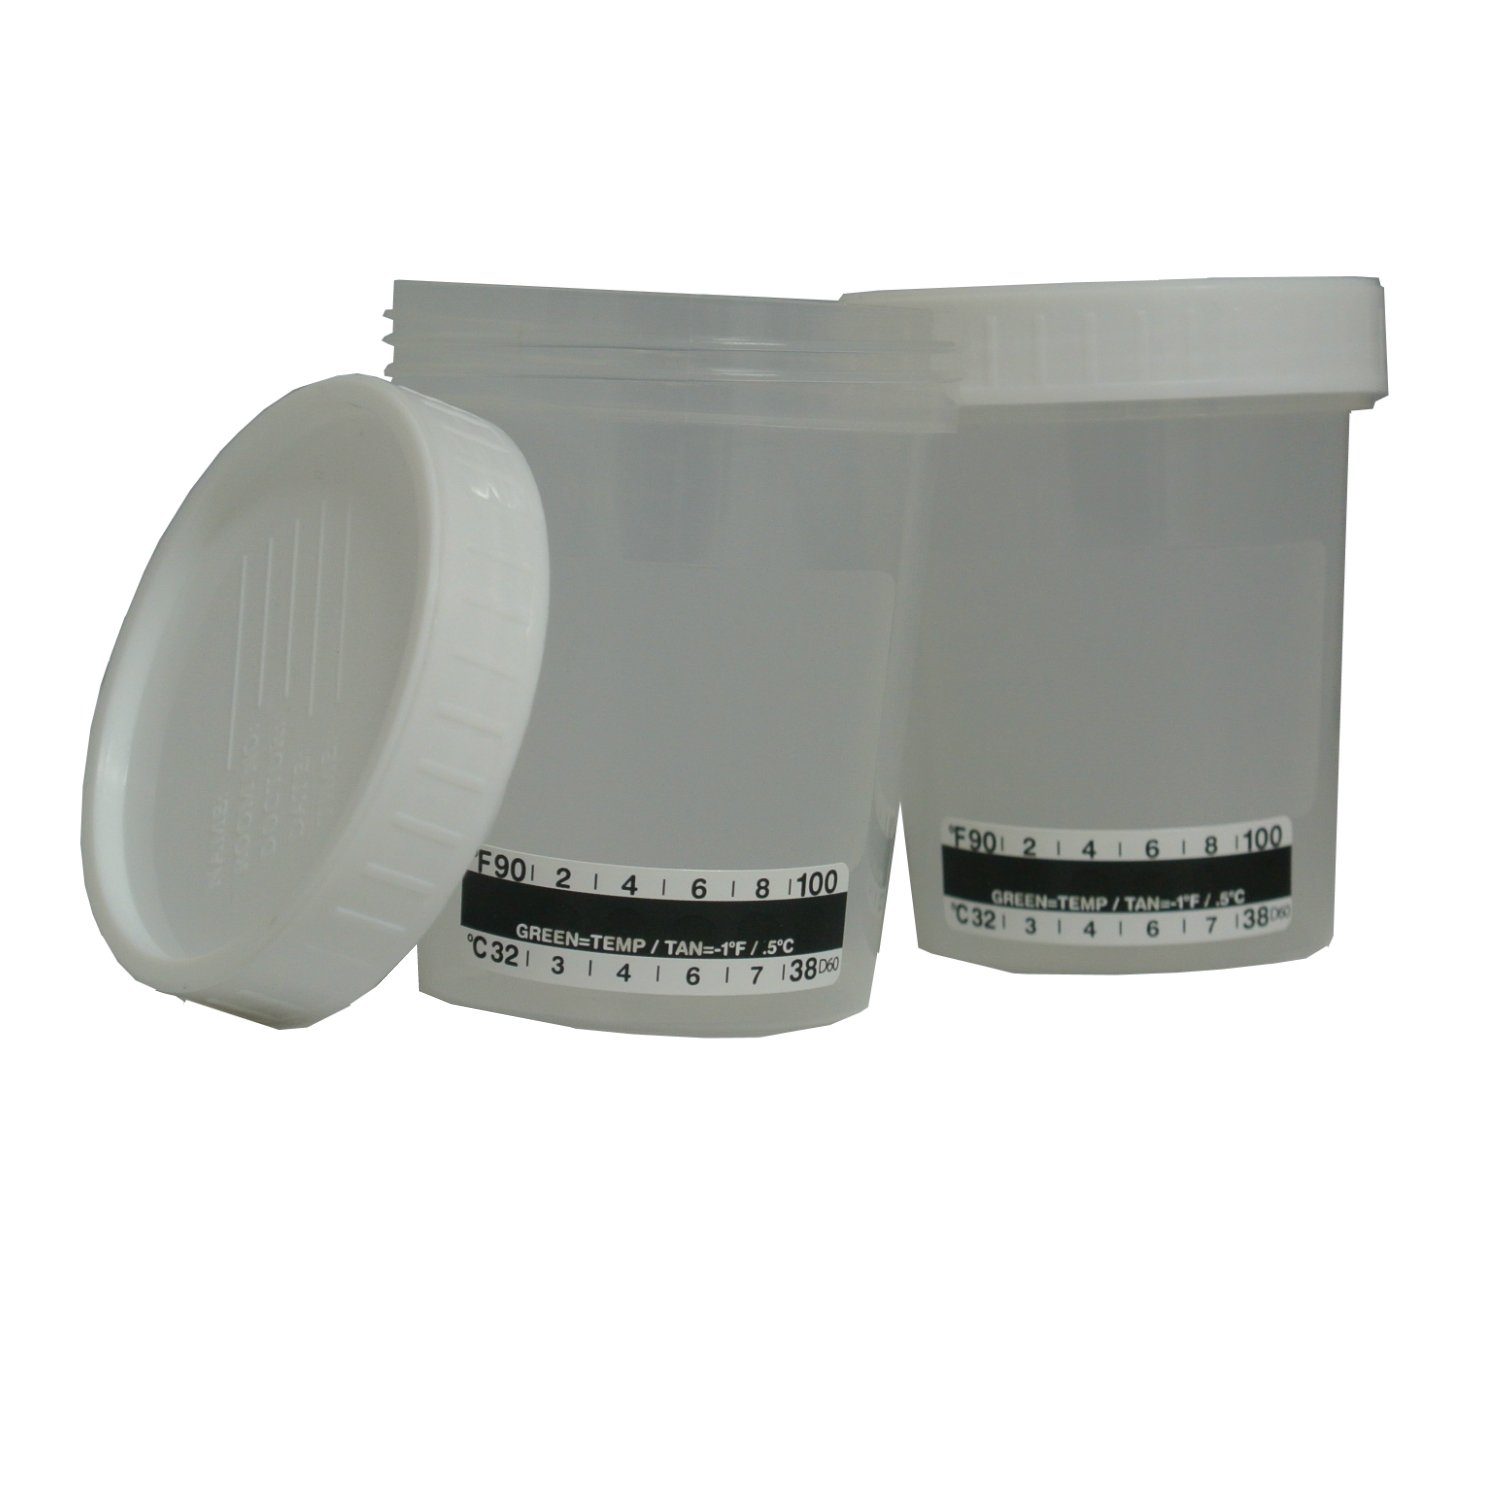 40 x Urine Specimen Cups with Lids and Temperature Strip 4oz - Individually Wrapped Container - Sterile Collection